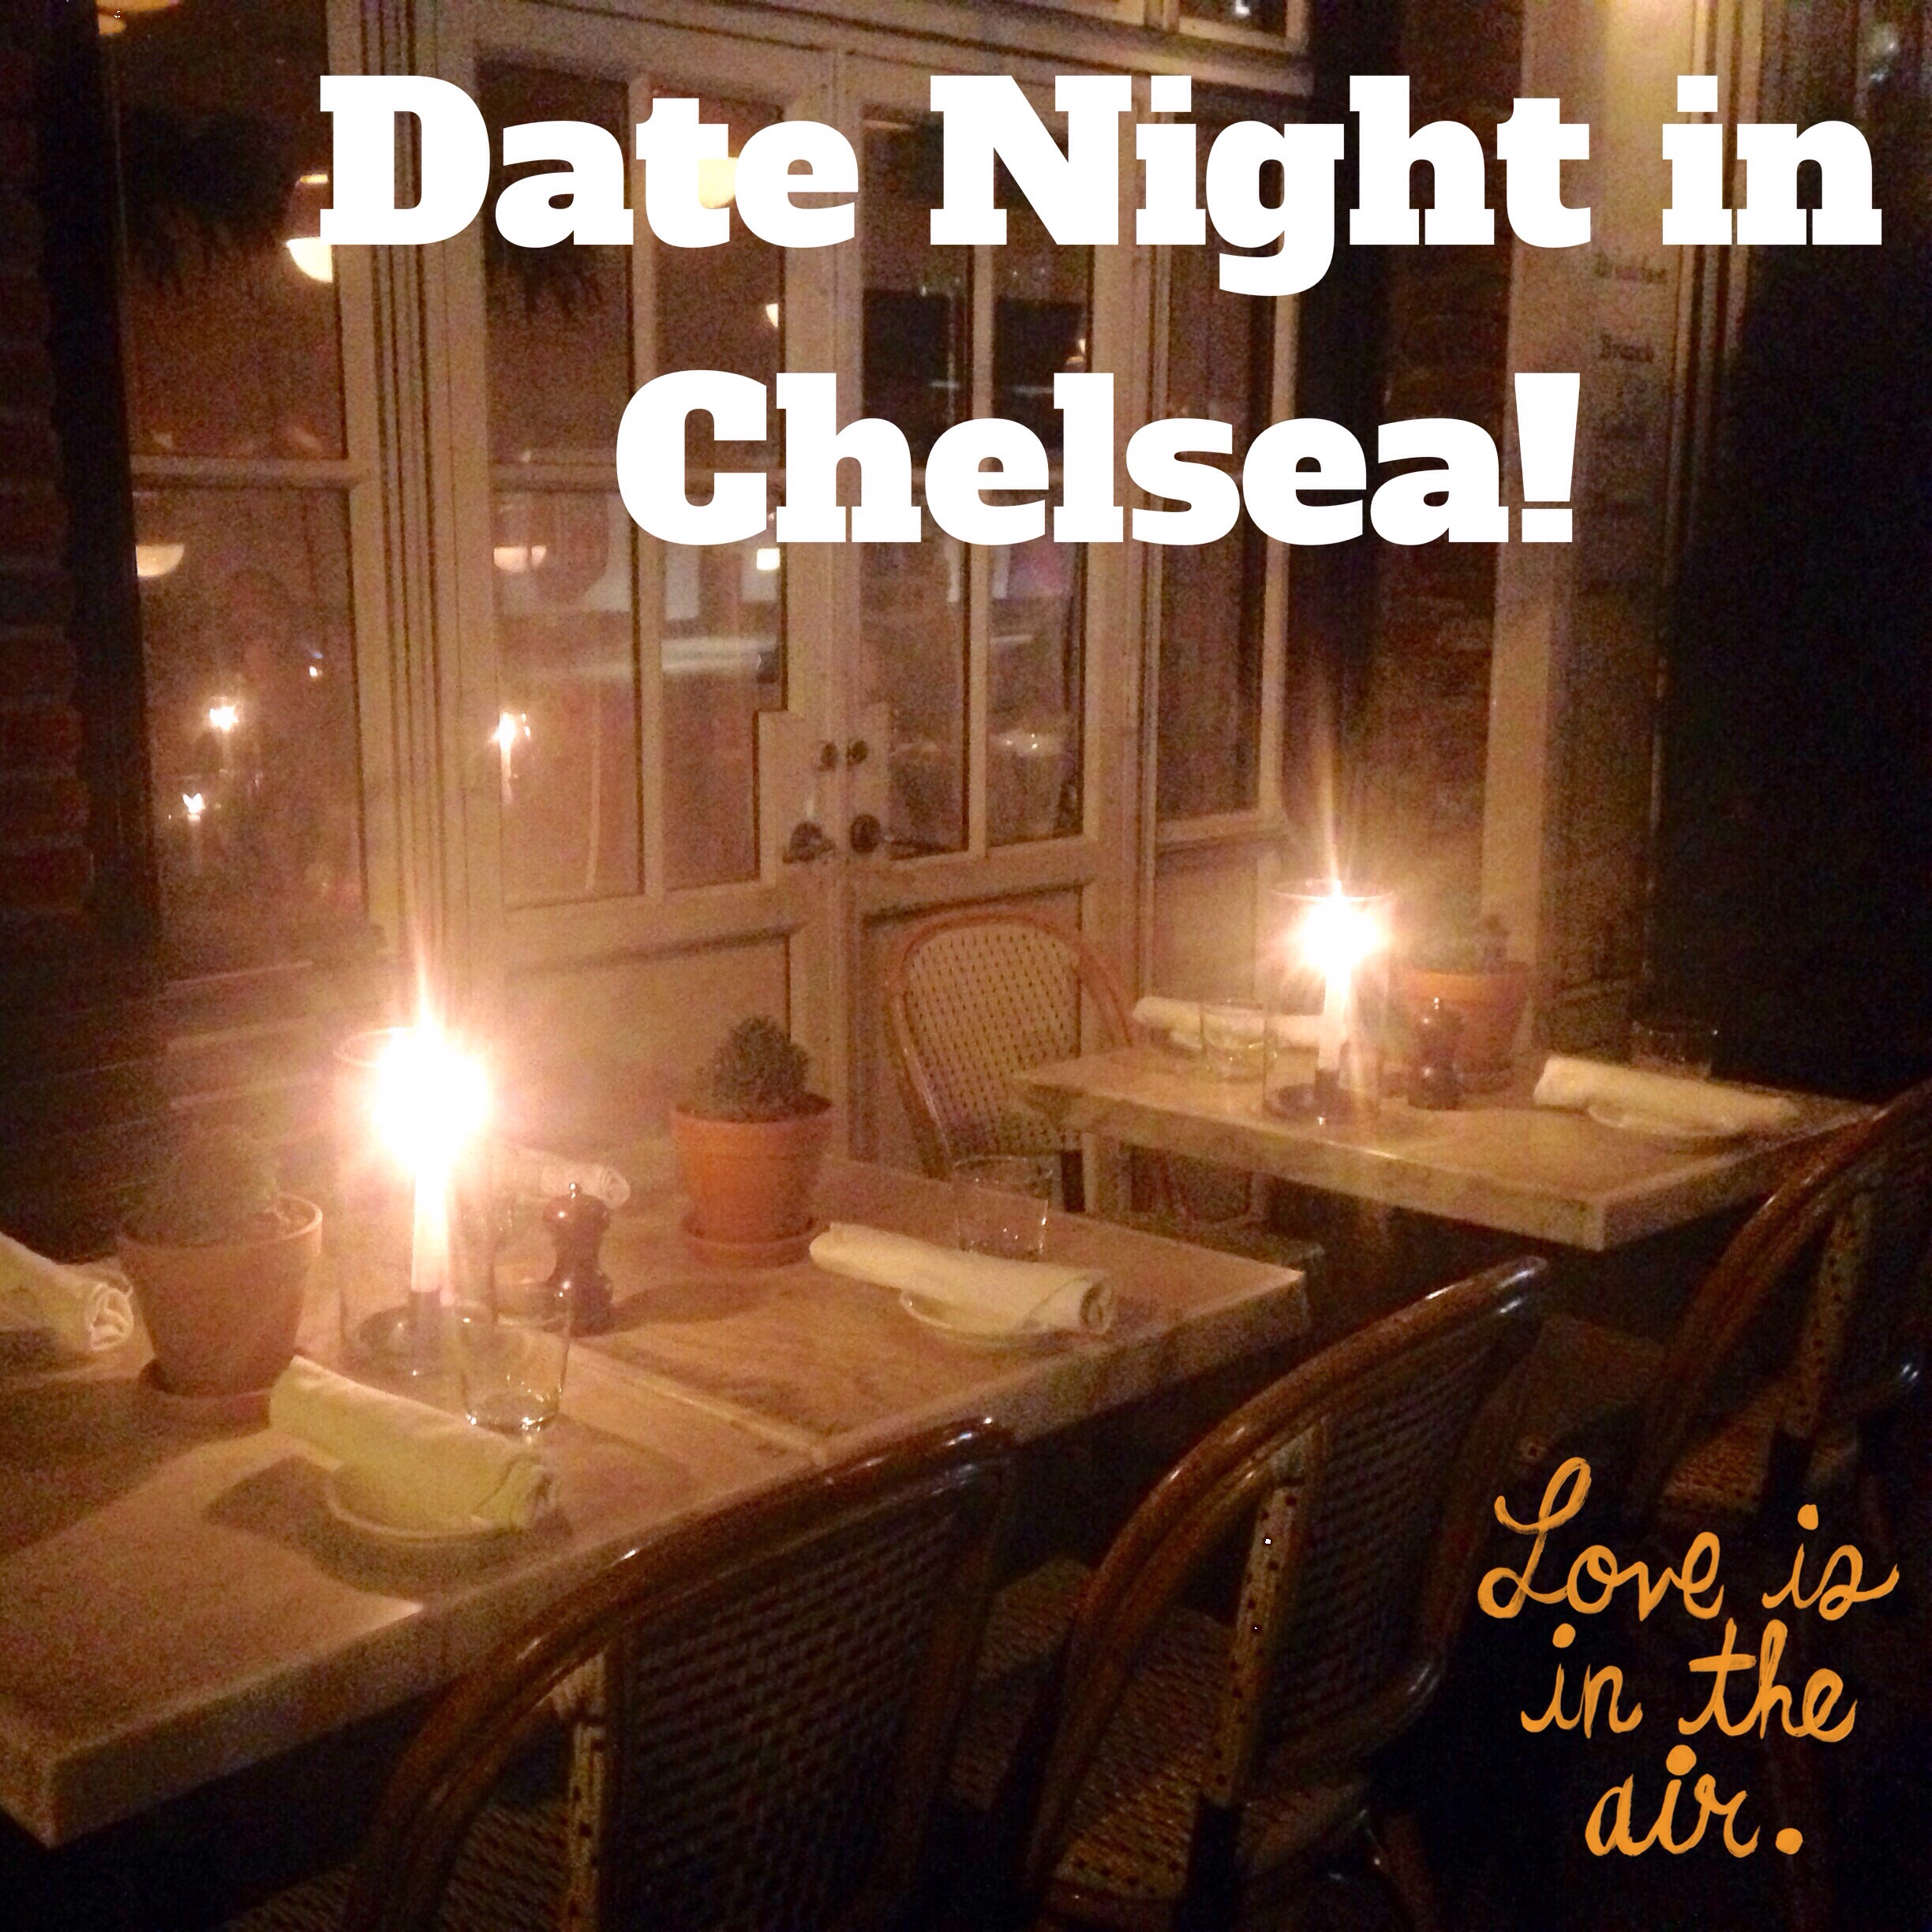 Date Night in Chelsea